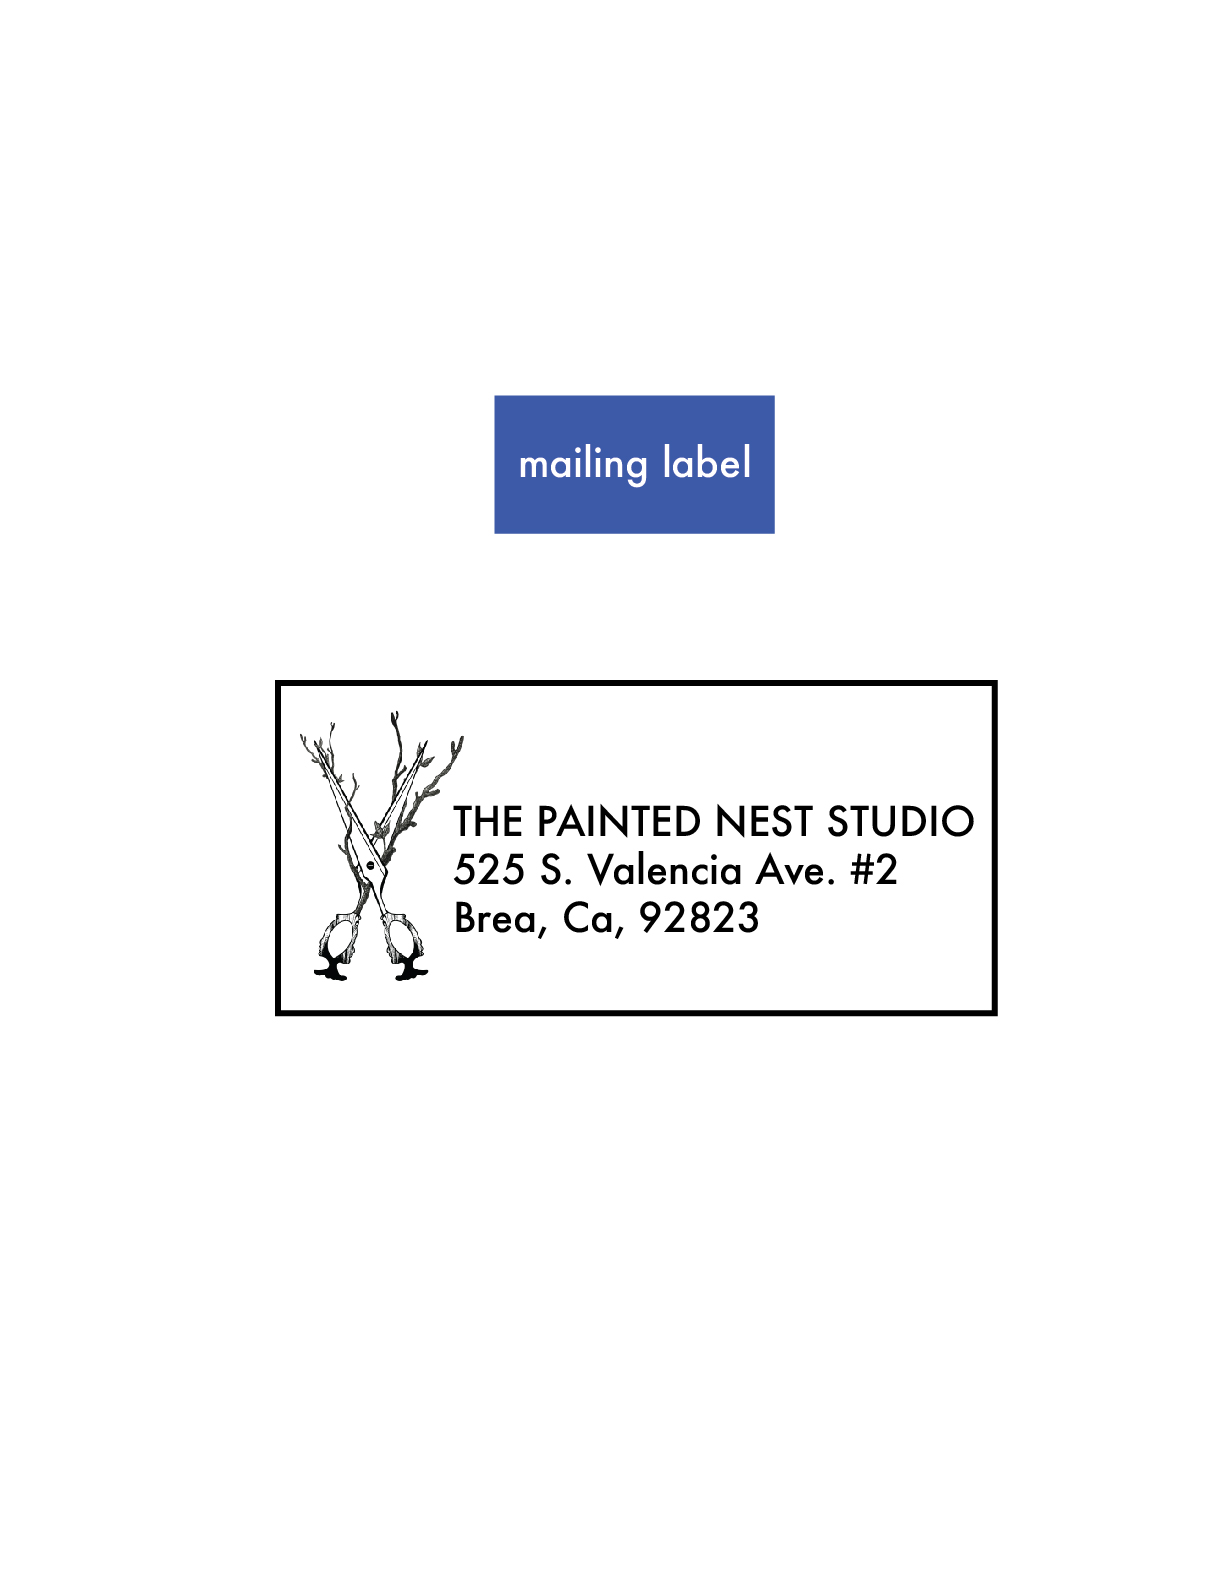 the painted nest studio mailing label